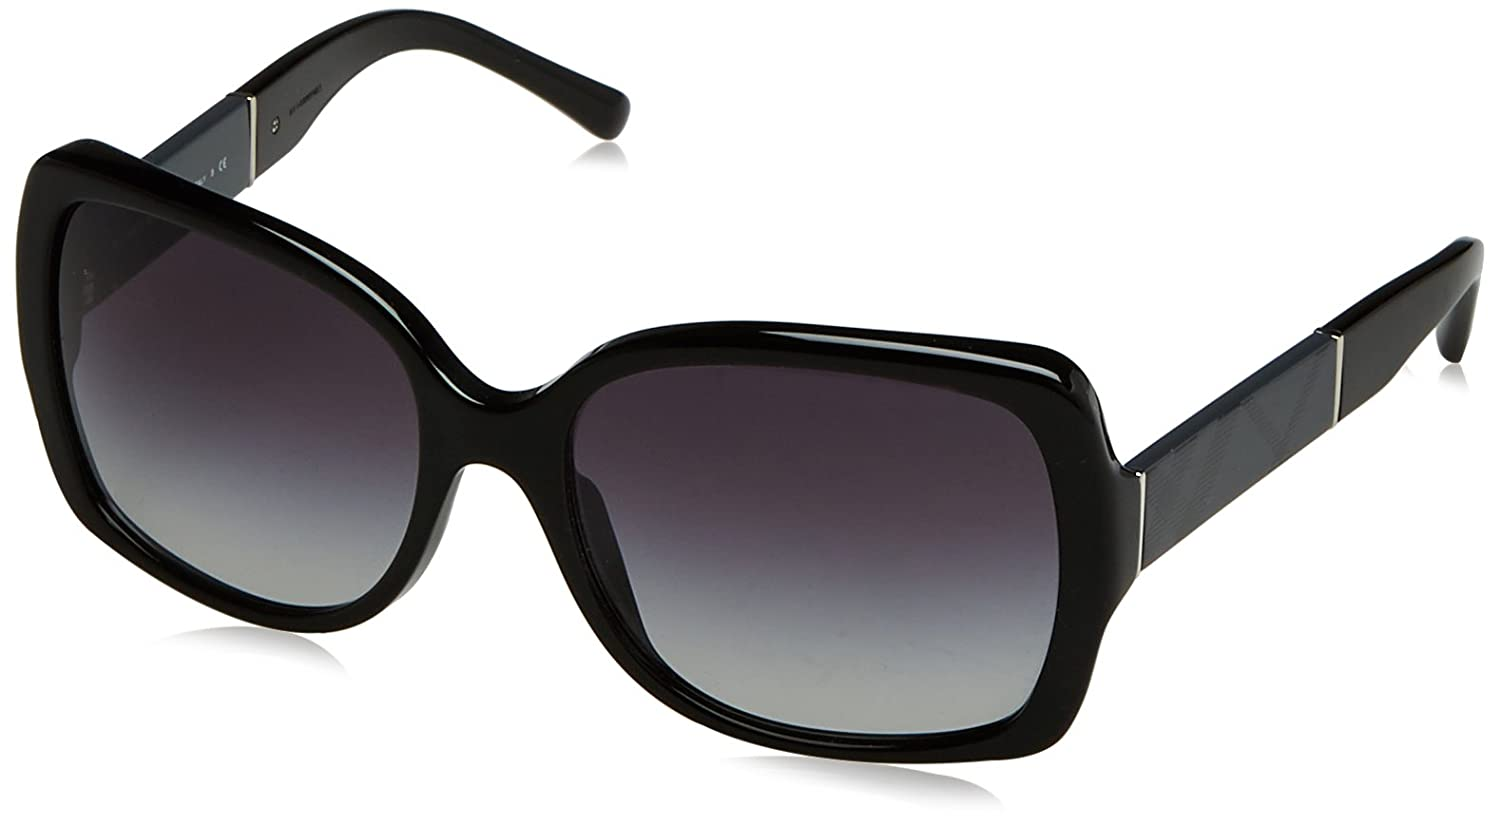 b49d07a92d Amazon.com  Burberry Women s BE4160 Sunglasses Black Gray Gradient 58mm   Burberry  Shoes